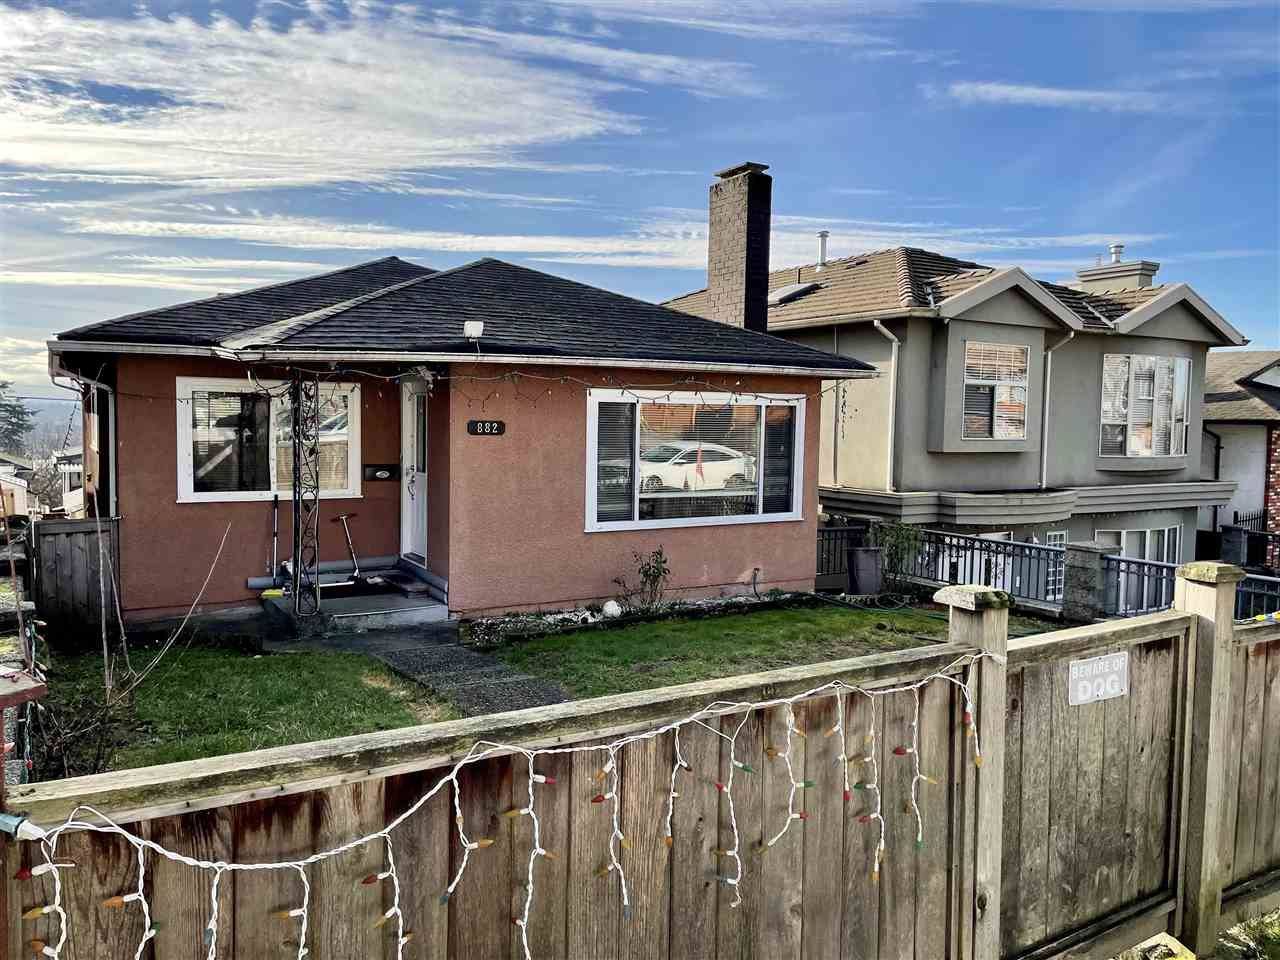 Main Photo: 882 E 63RD Avenue in Vancouver: South Vancouver House for sale (Vancouver East)  : MLS®# R2531713